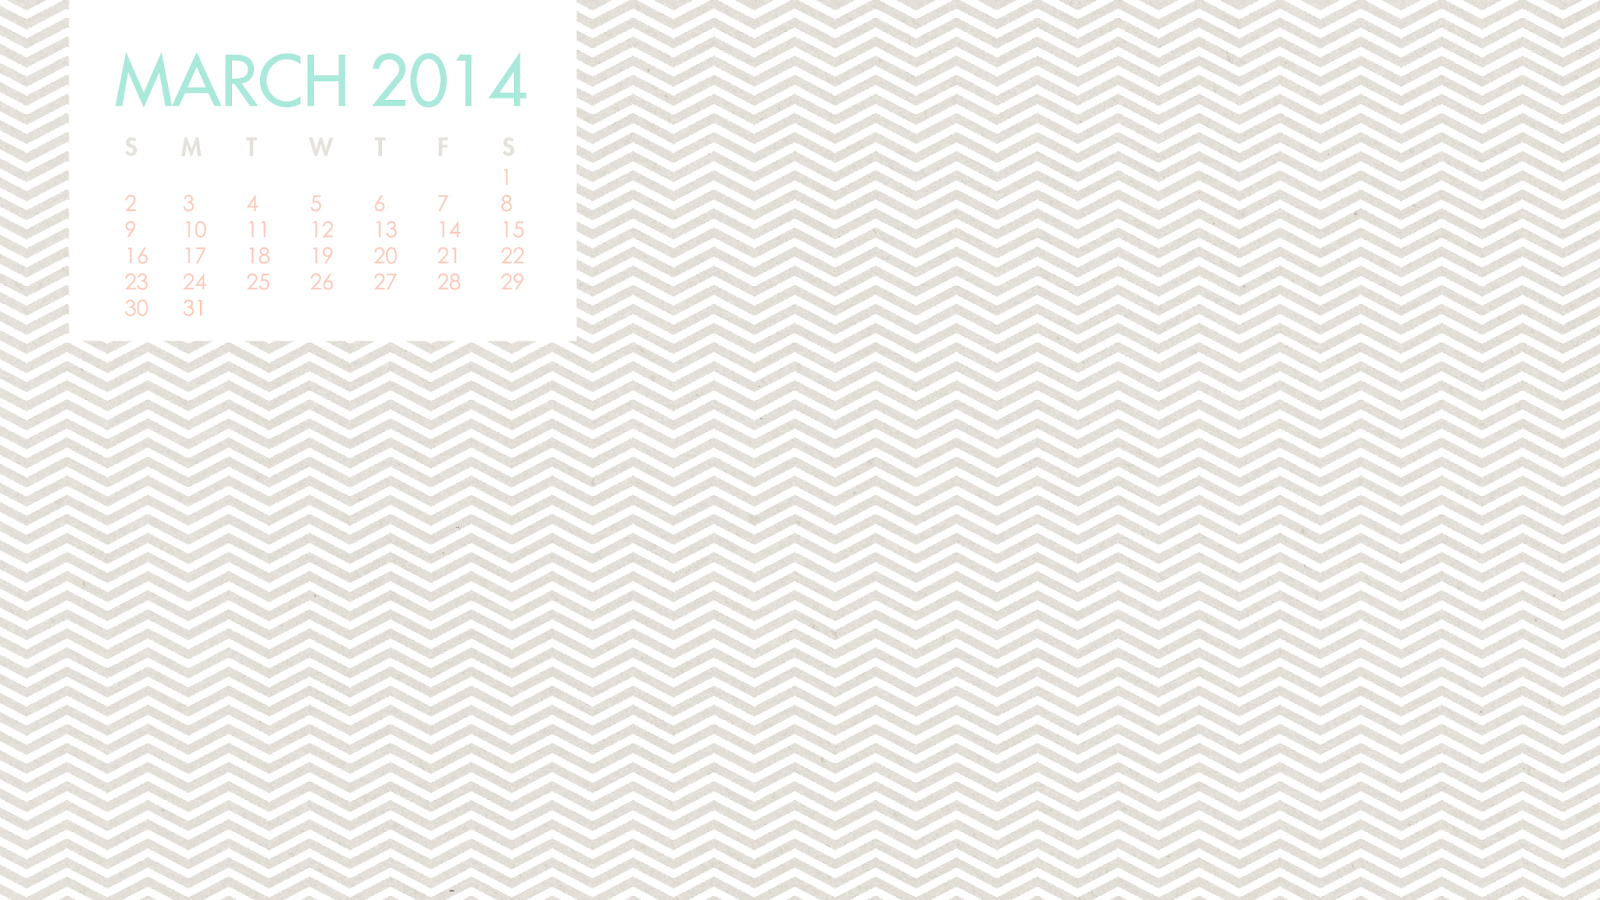 Free Desktop Calendar January 2014